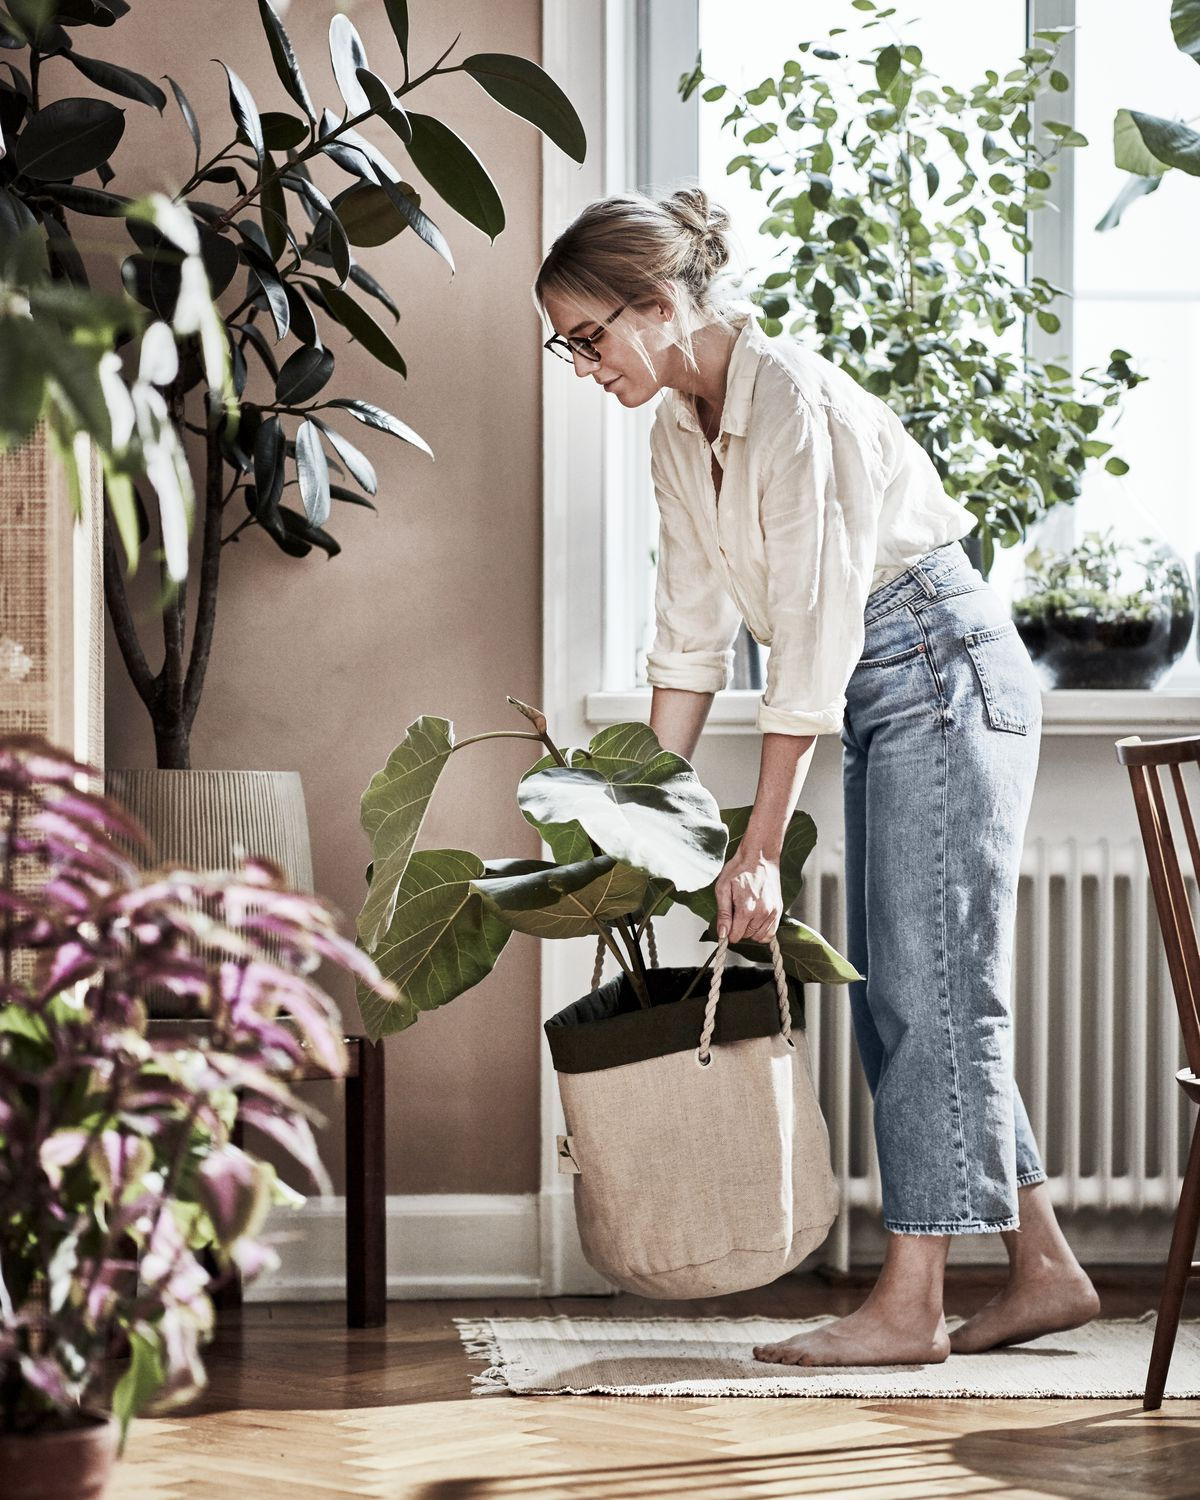 Ikea S New Botanisk Collection Wants To Spruce Up Your